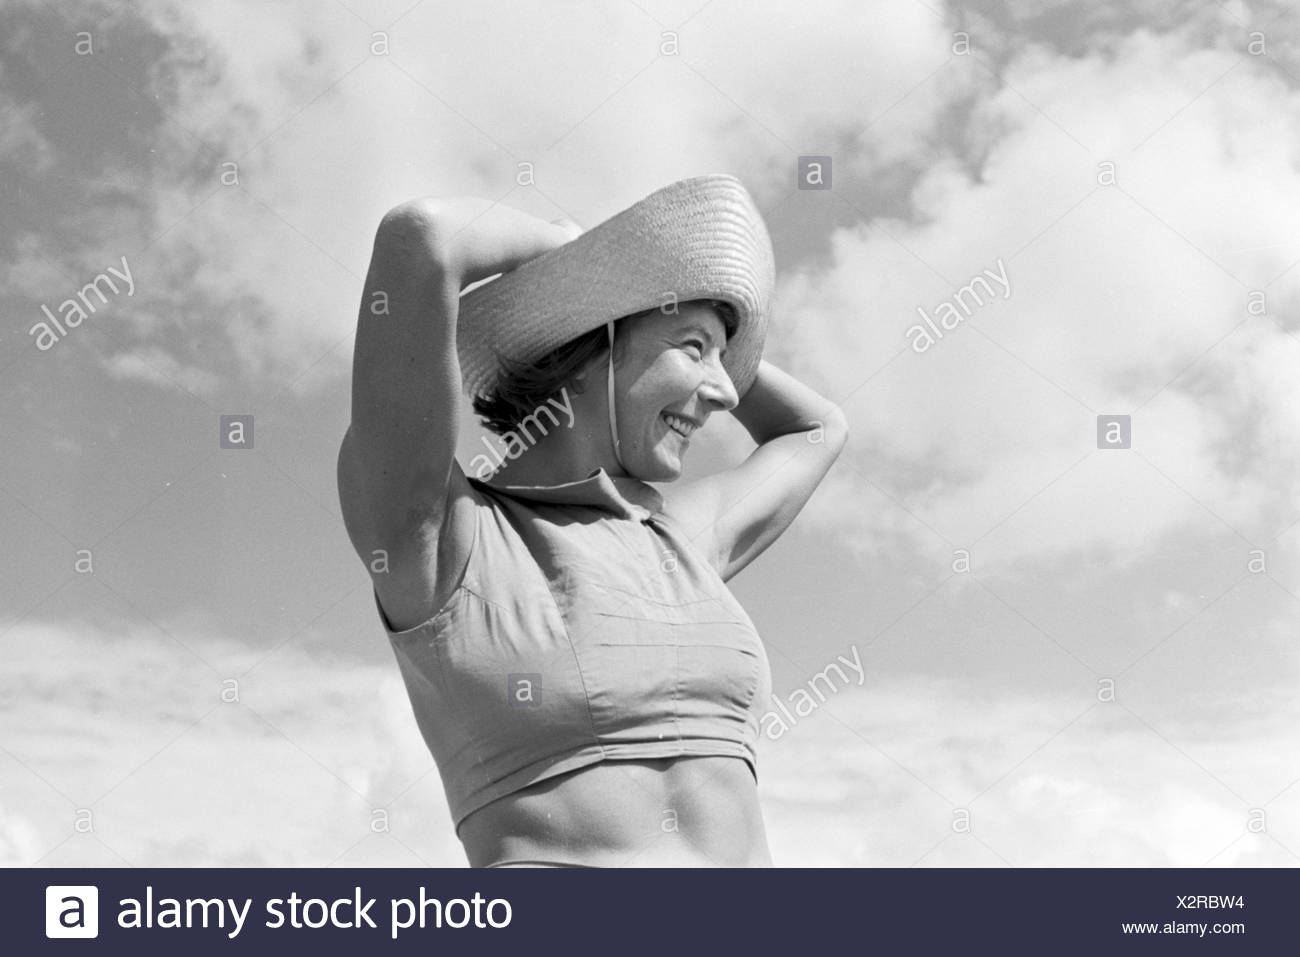 Die berühmte Tänzerin Gret Palucca während Ihrem Sommerurlaub auf Sylt, Deutsches Reich 1930er Jahre. The popular dancer Gret Palucca on vacation on Sylt, Germany 1930s. - Stock Image